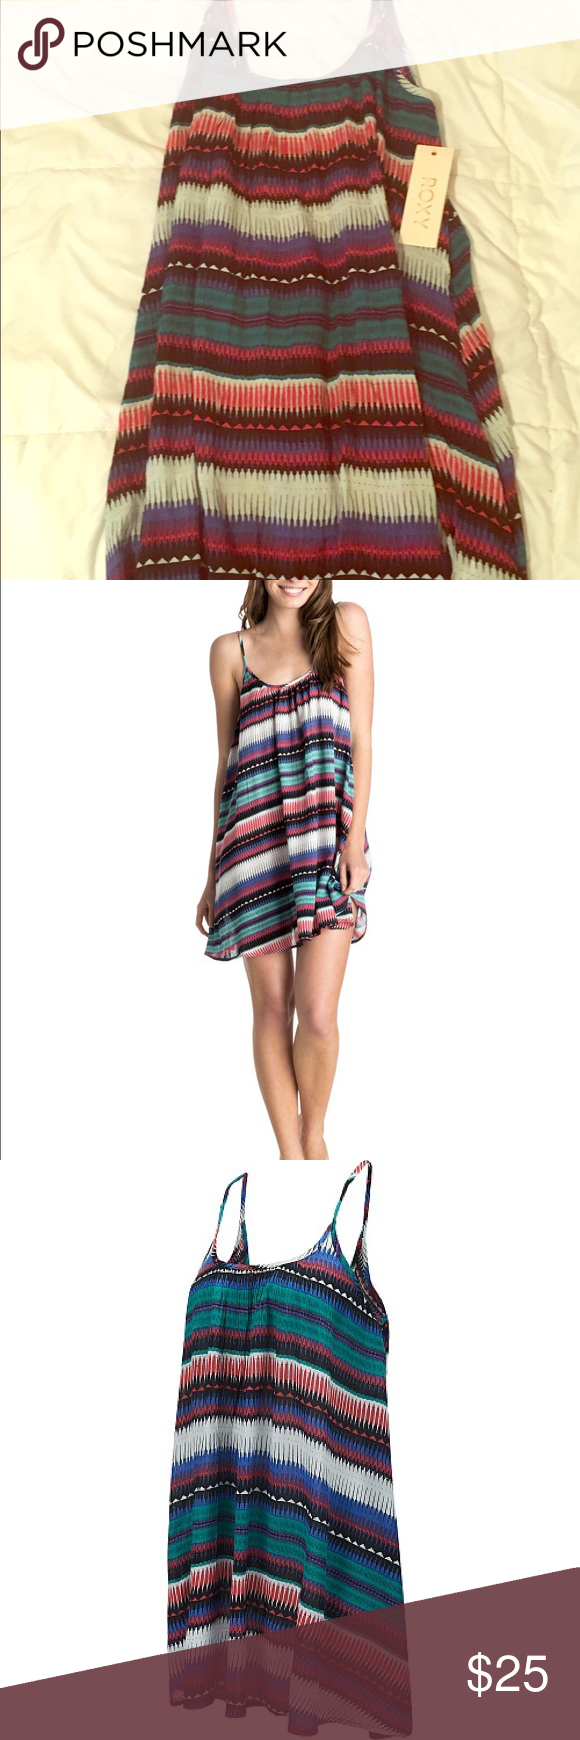 Roxy Sweet Vida Cover-up Dress With Low Back NEE/NEVER WORN Roxy women's breezy Sweet Vida printed dress is sure to brighten any warm day! The flowy design is complemented by thin straps, along with a scoop neckline and low back. Whether you wear it as a beach cover-up or for a stroll on the boardwalk, the sassy print is sure to pop! US Women's Size MEDIUM Roxy Swim Coverups